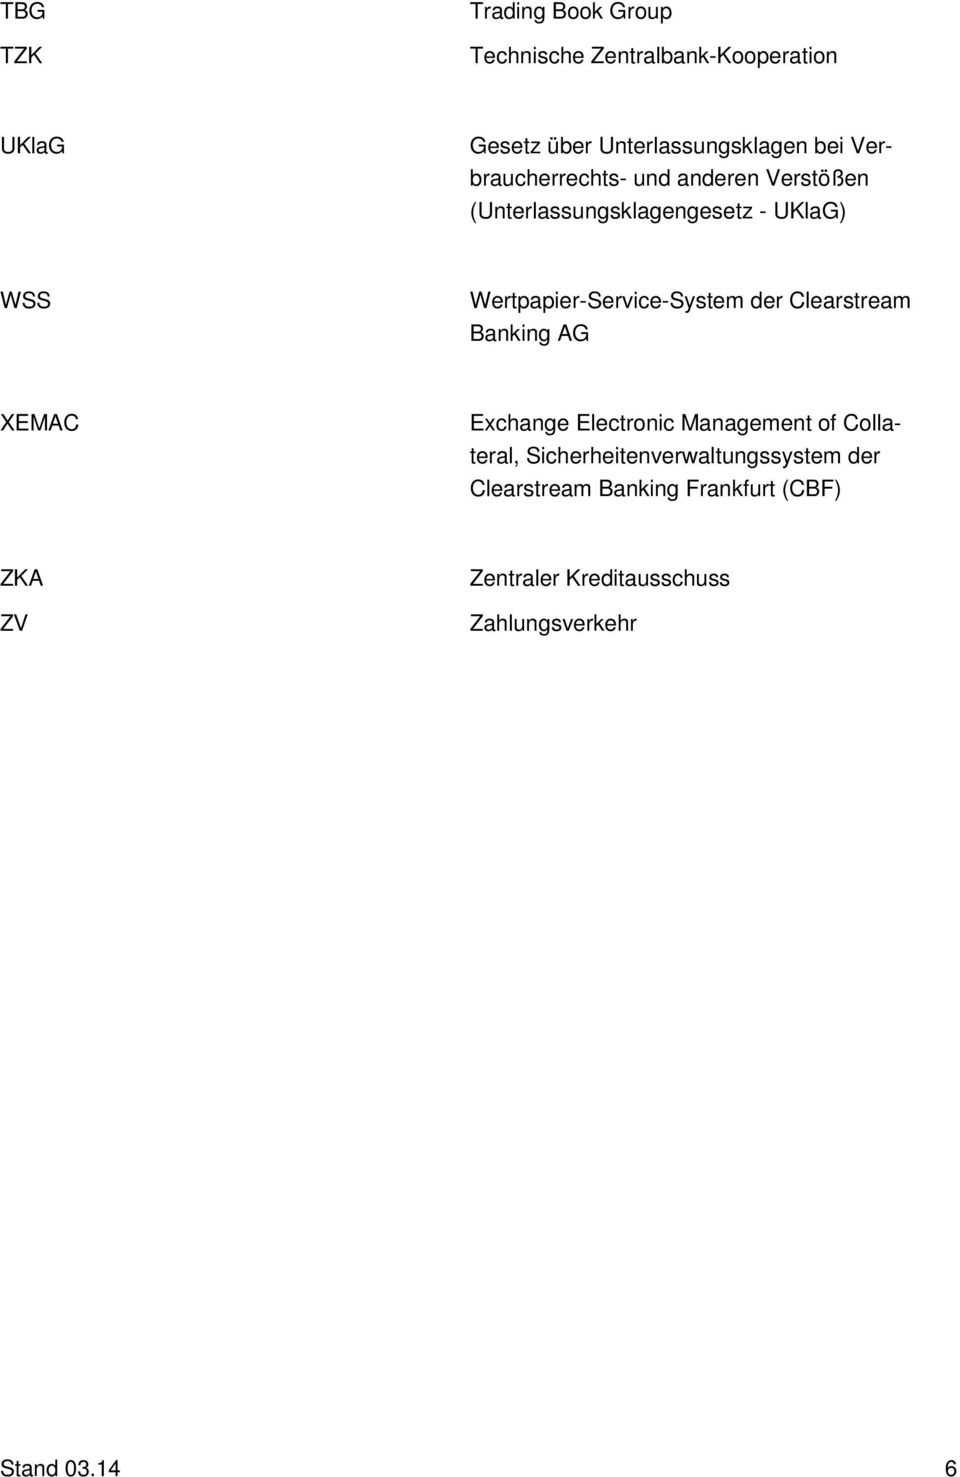 Wertpapier-Service-System der Clearstream Banking AG XEMAC Exchange Electronic Management of Collateral,